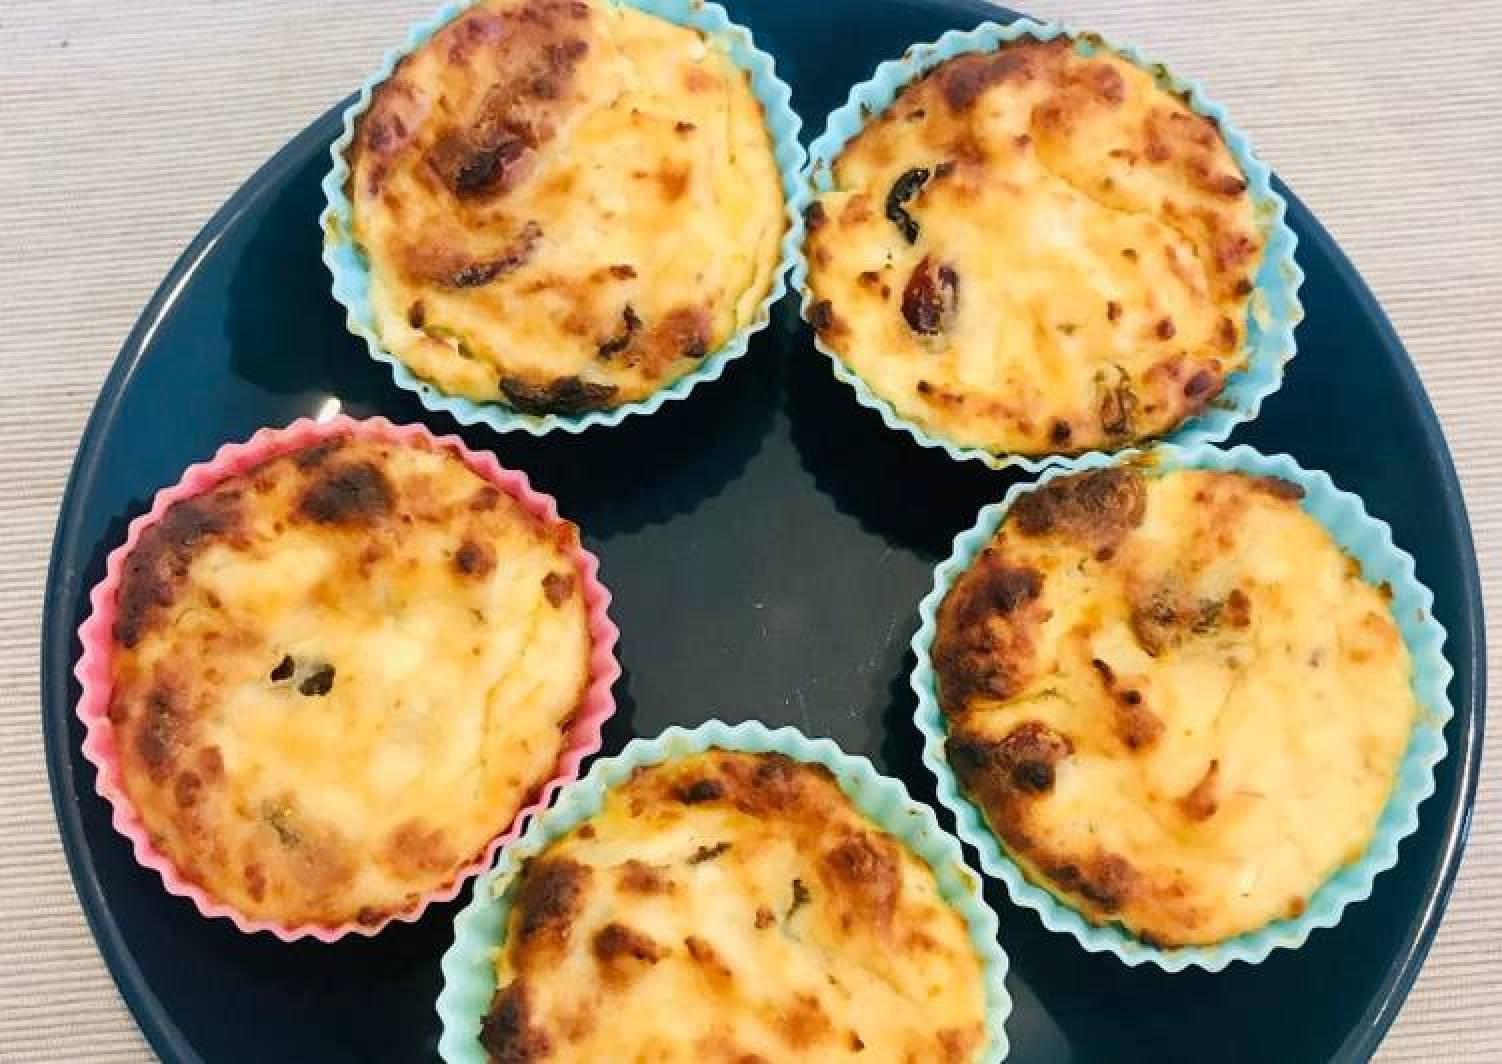 Syrniki baked in the oven